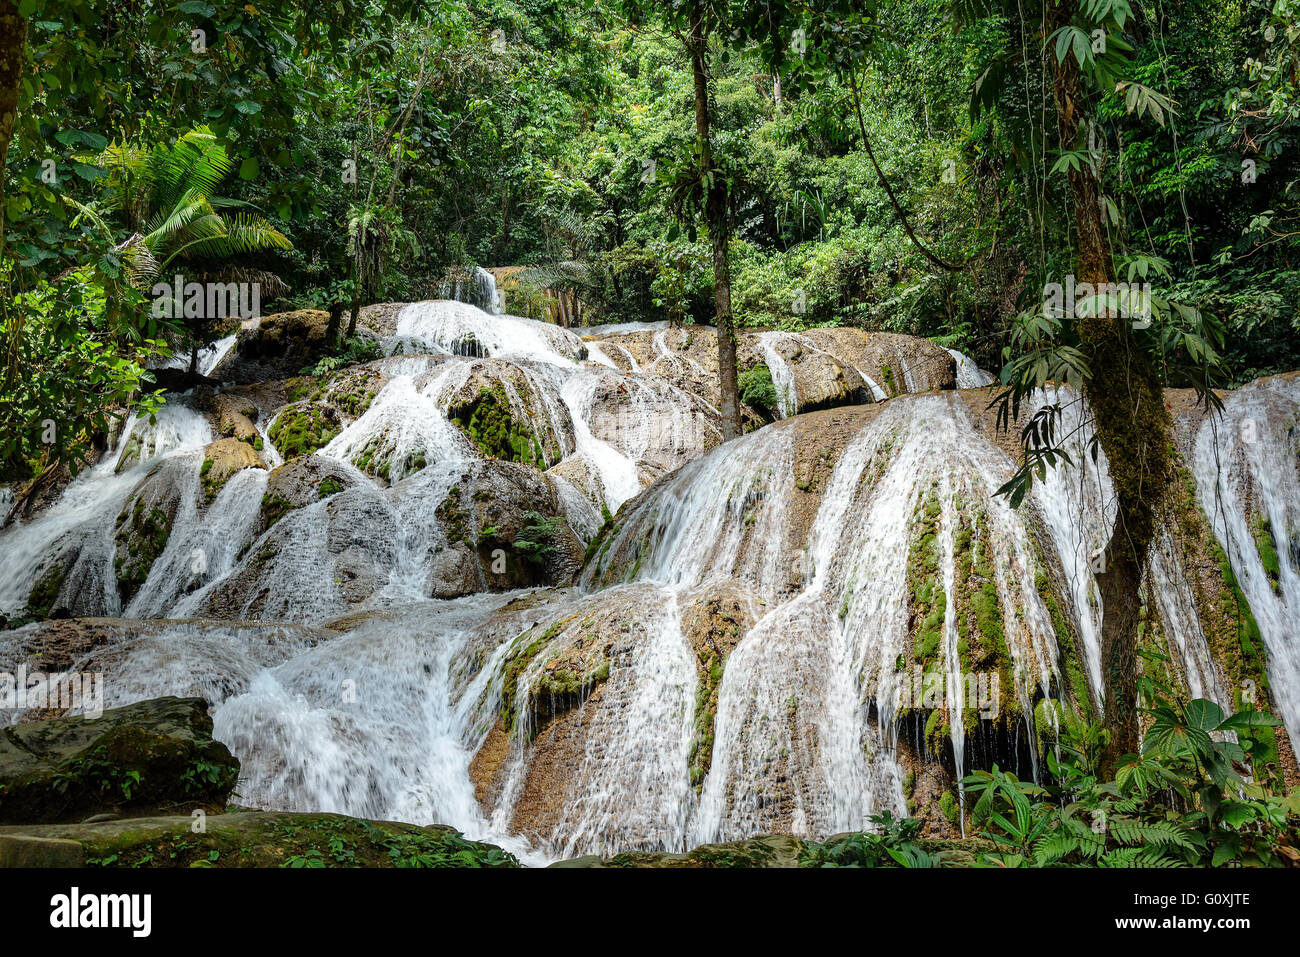 Saluopa Waterfall in Tentena. Central Sulawesi. Indonesia - Stock Image